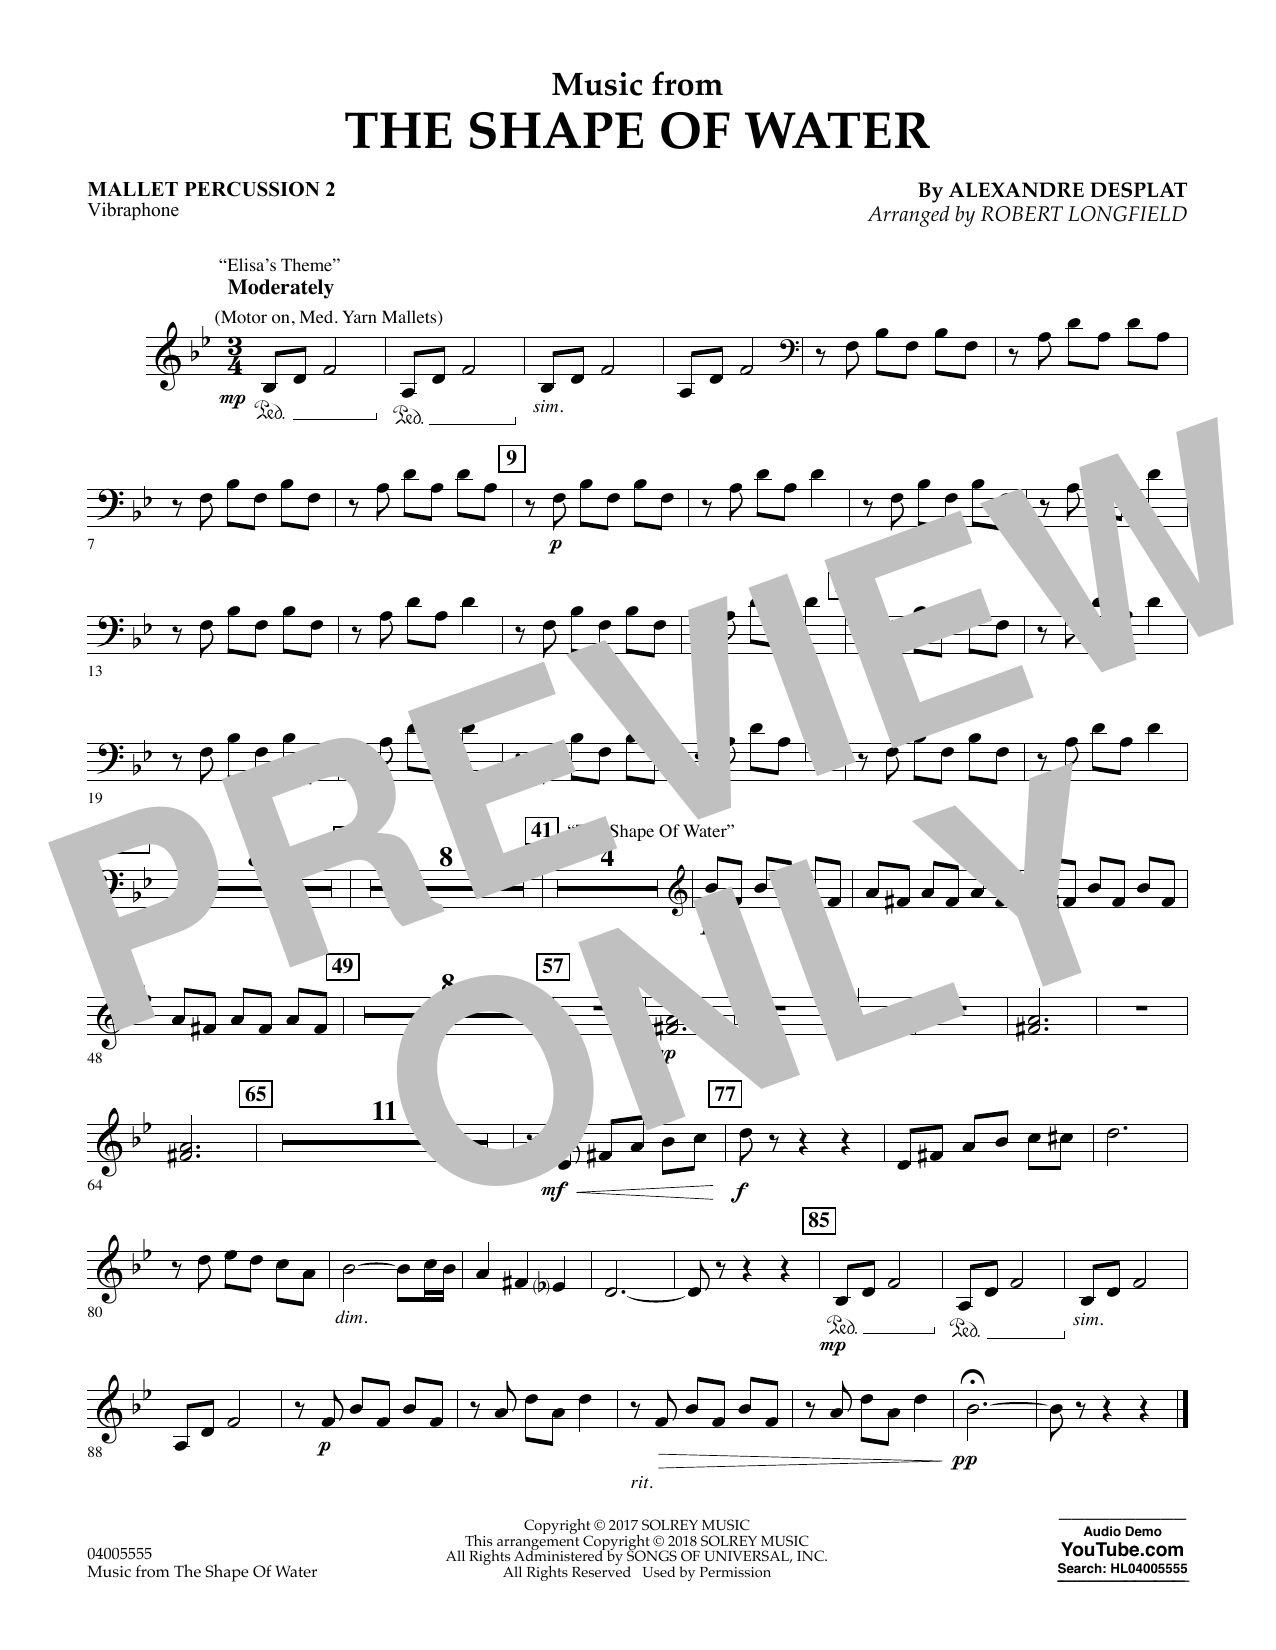 Music from The Shape of Water - Mallet Percussion 2 (Concert Band)